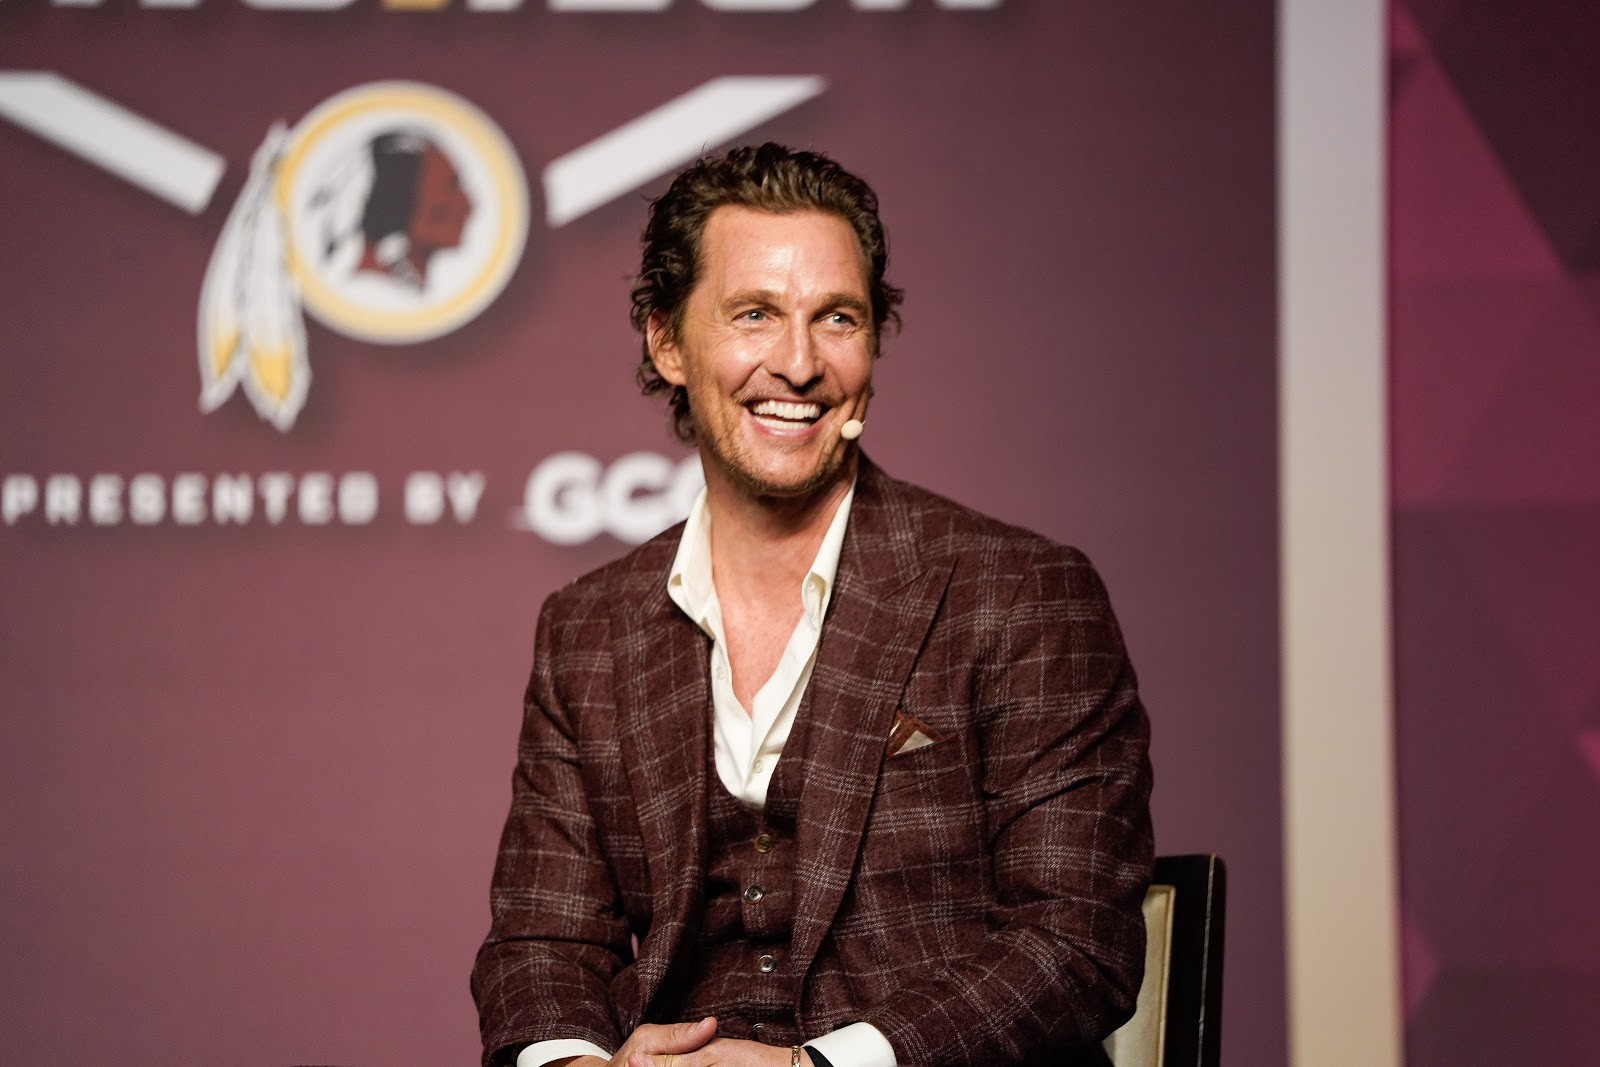 Image of Matthew McConaughey seated on stage at an event.